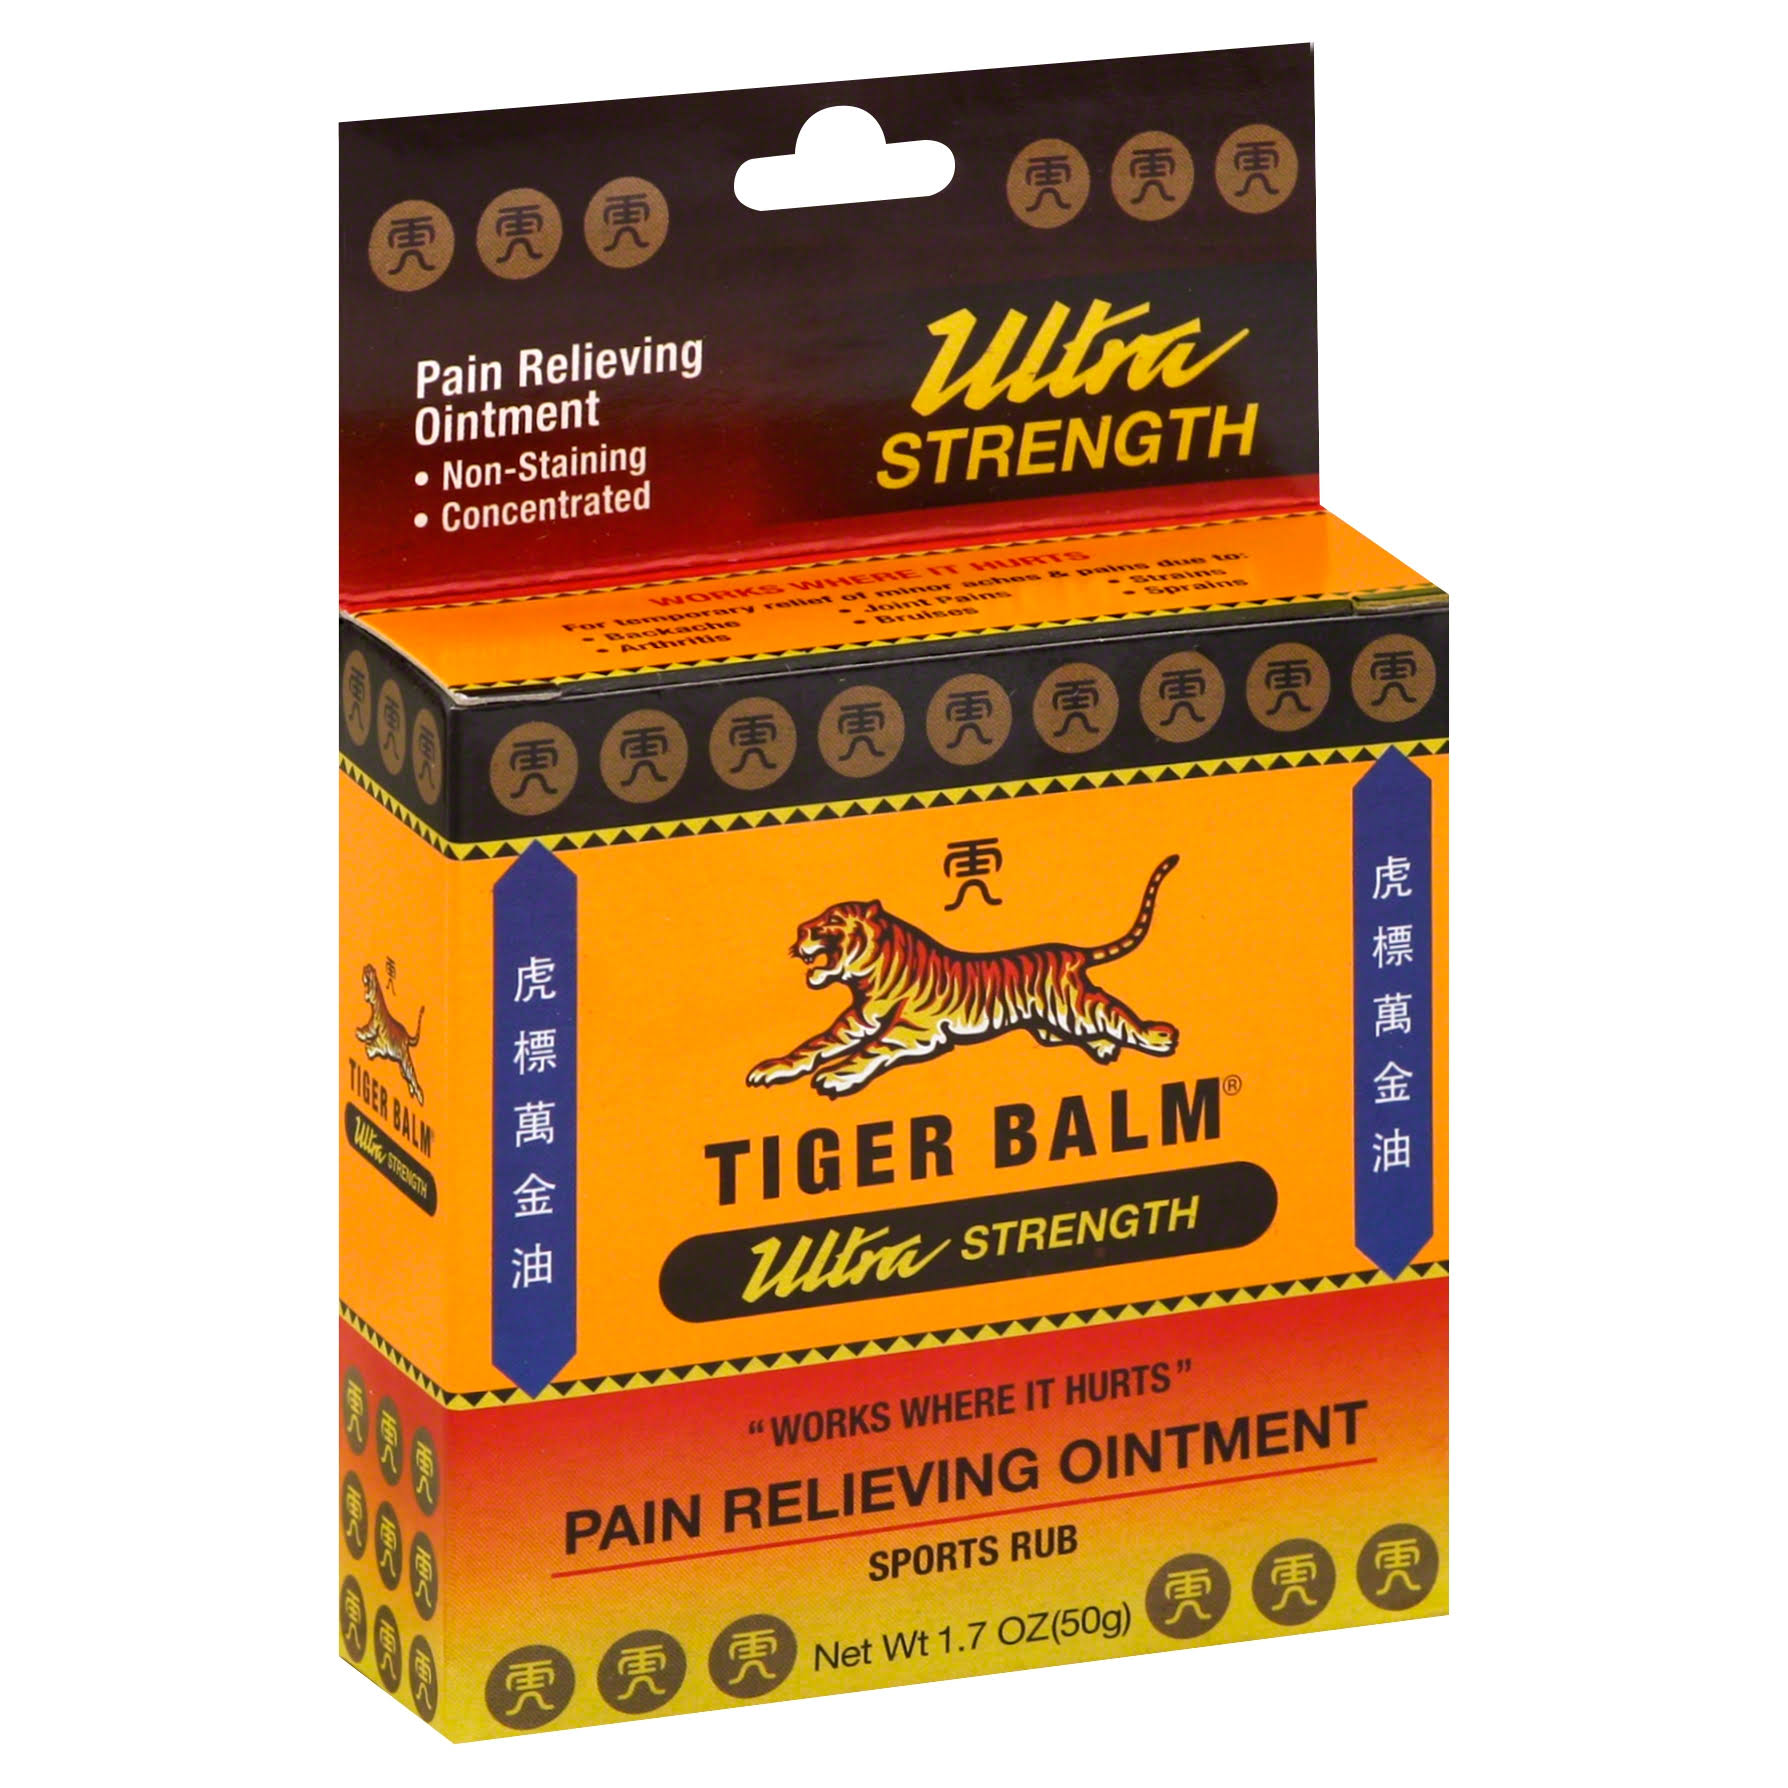 Tiger Balm Non Staining Ultra Strength Pain Relieving Ointment - 50g